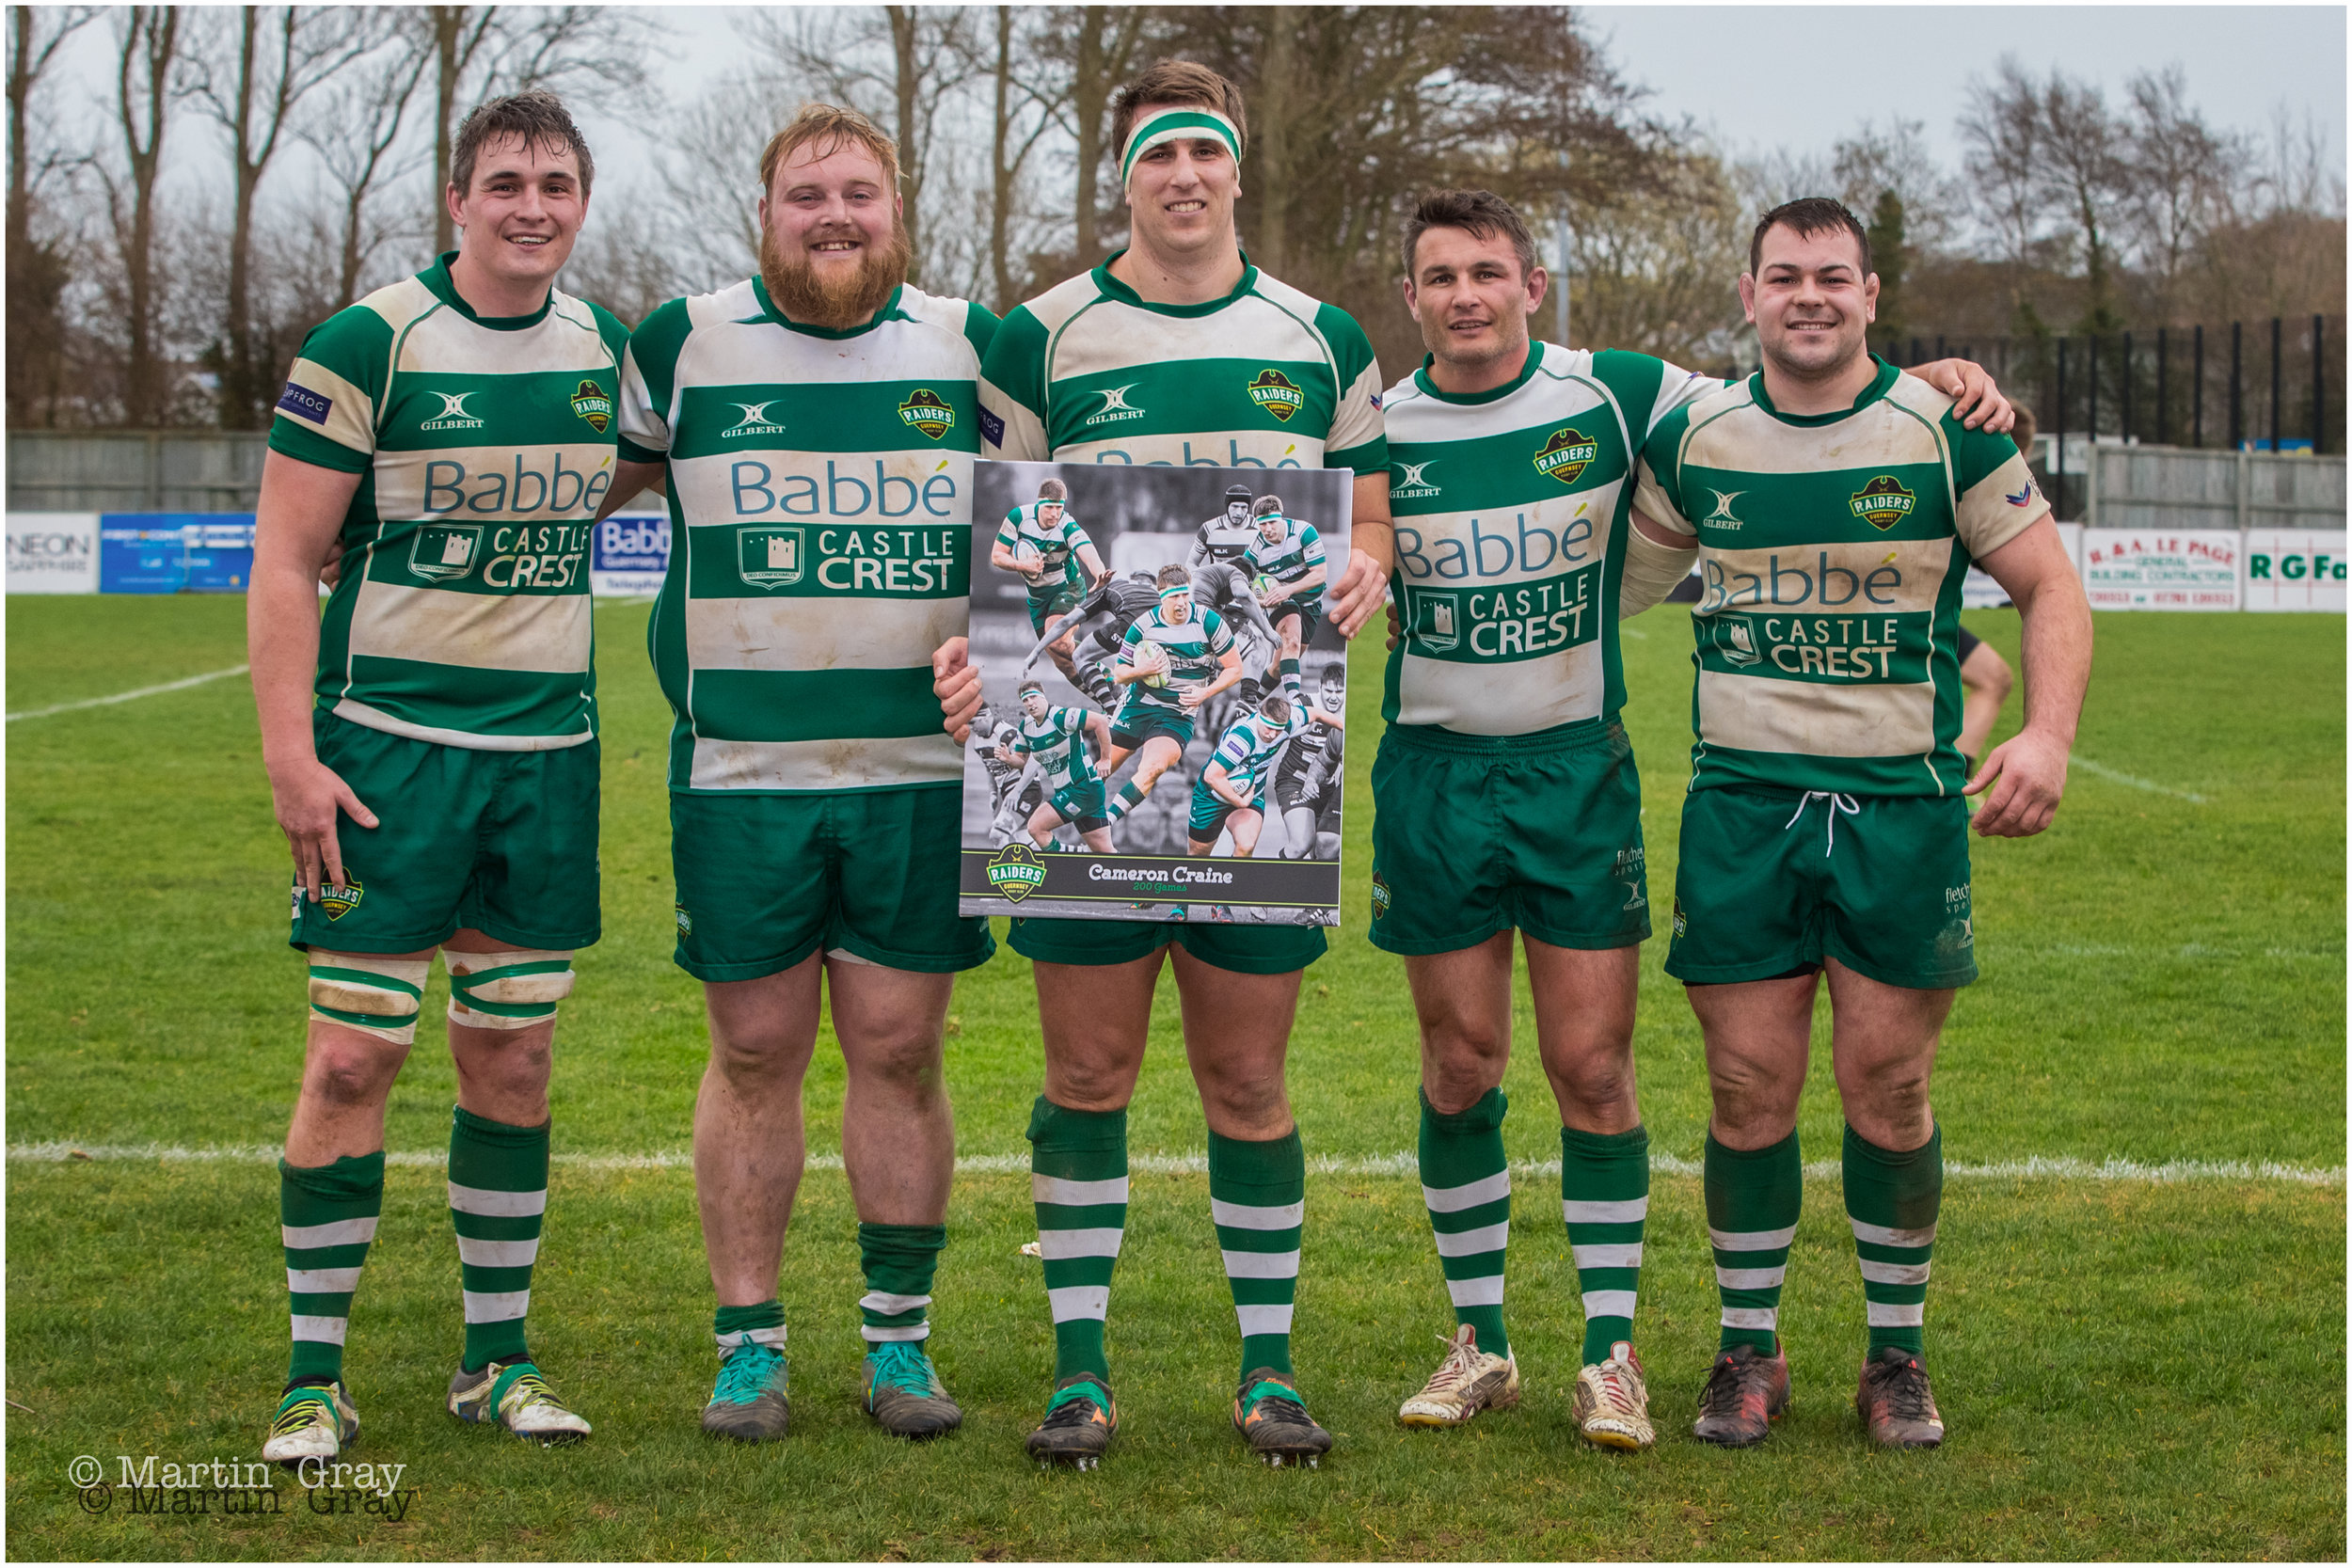 Guernsey Raiders v Old Redcliffians RFC played at Footes lane 9th March 2019… Raiders win 24-17… More photos to be added during the day! Enjoy! Here's the 200 Club…